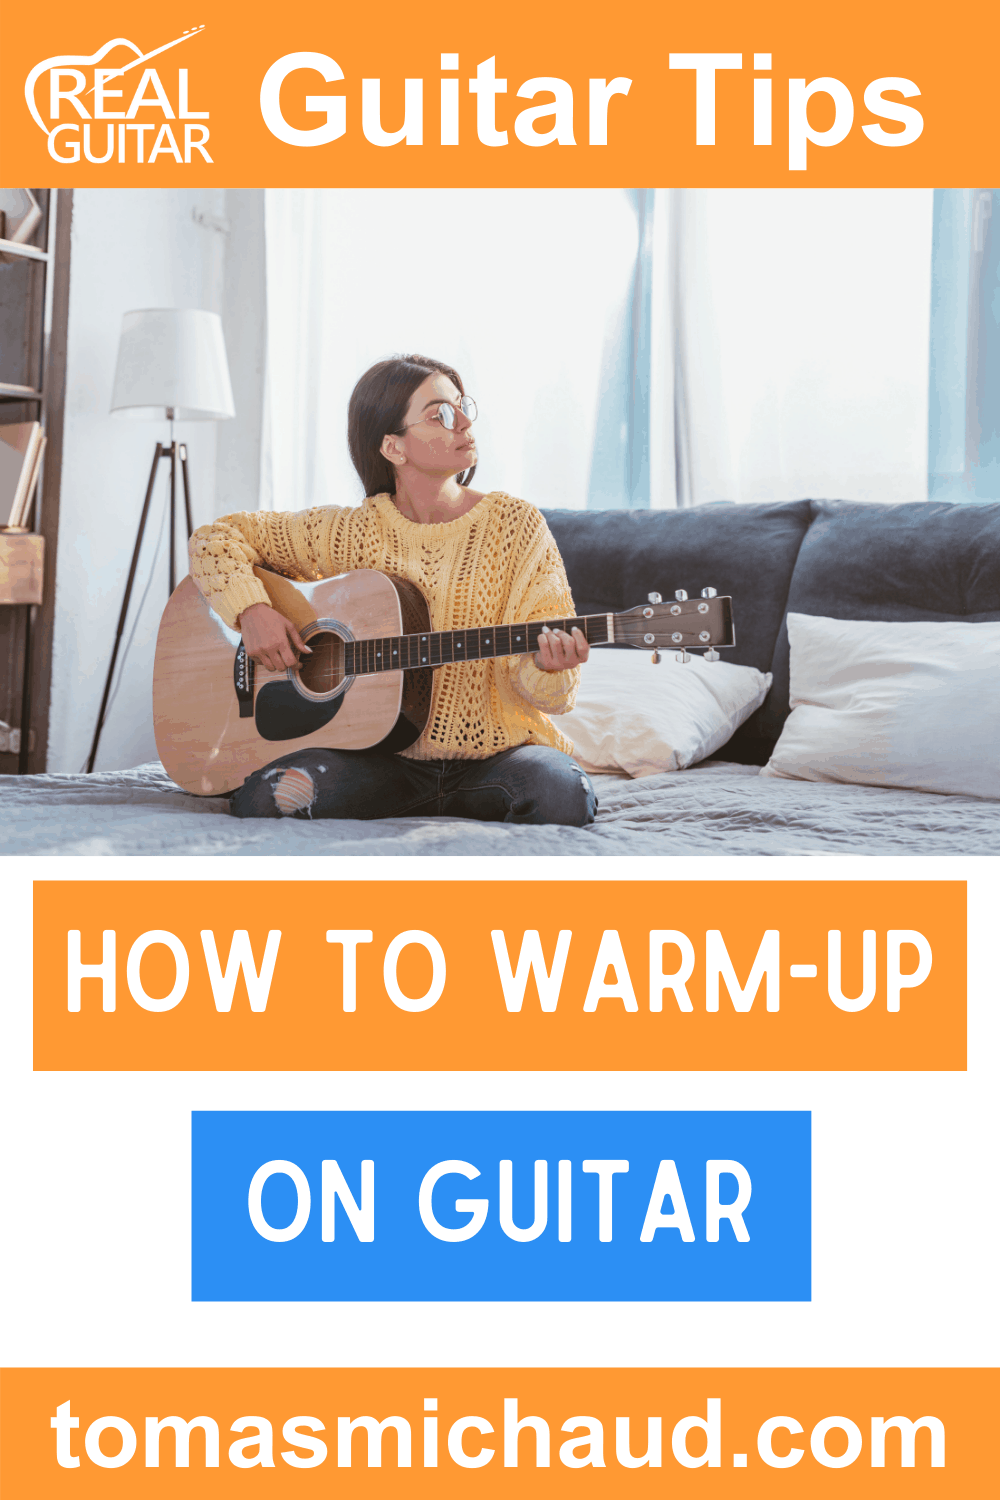 How to Warm-Up on Guitar